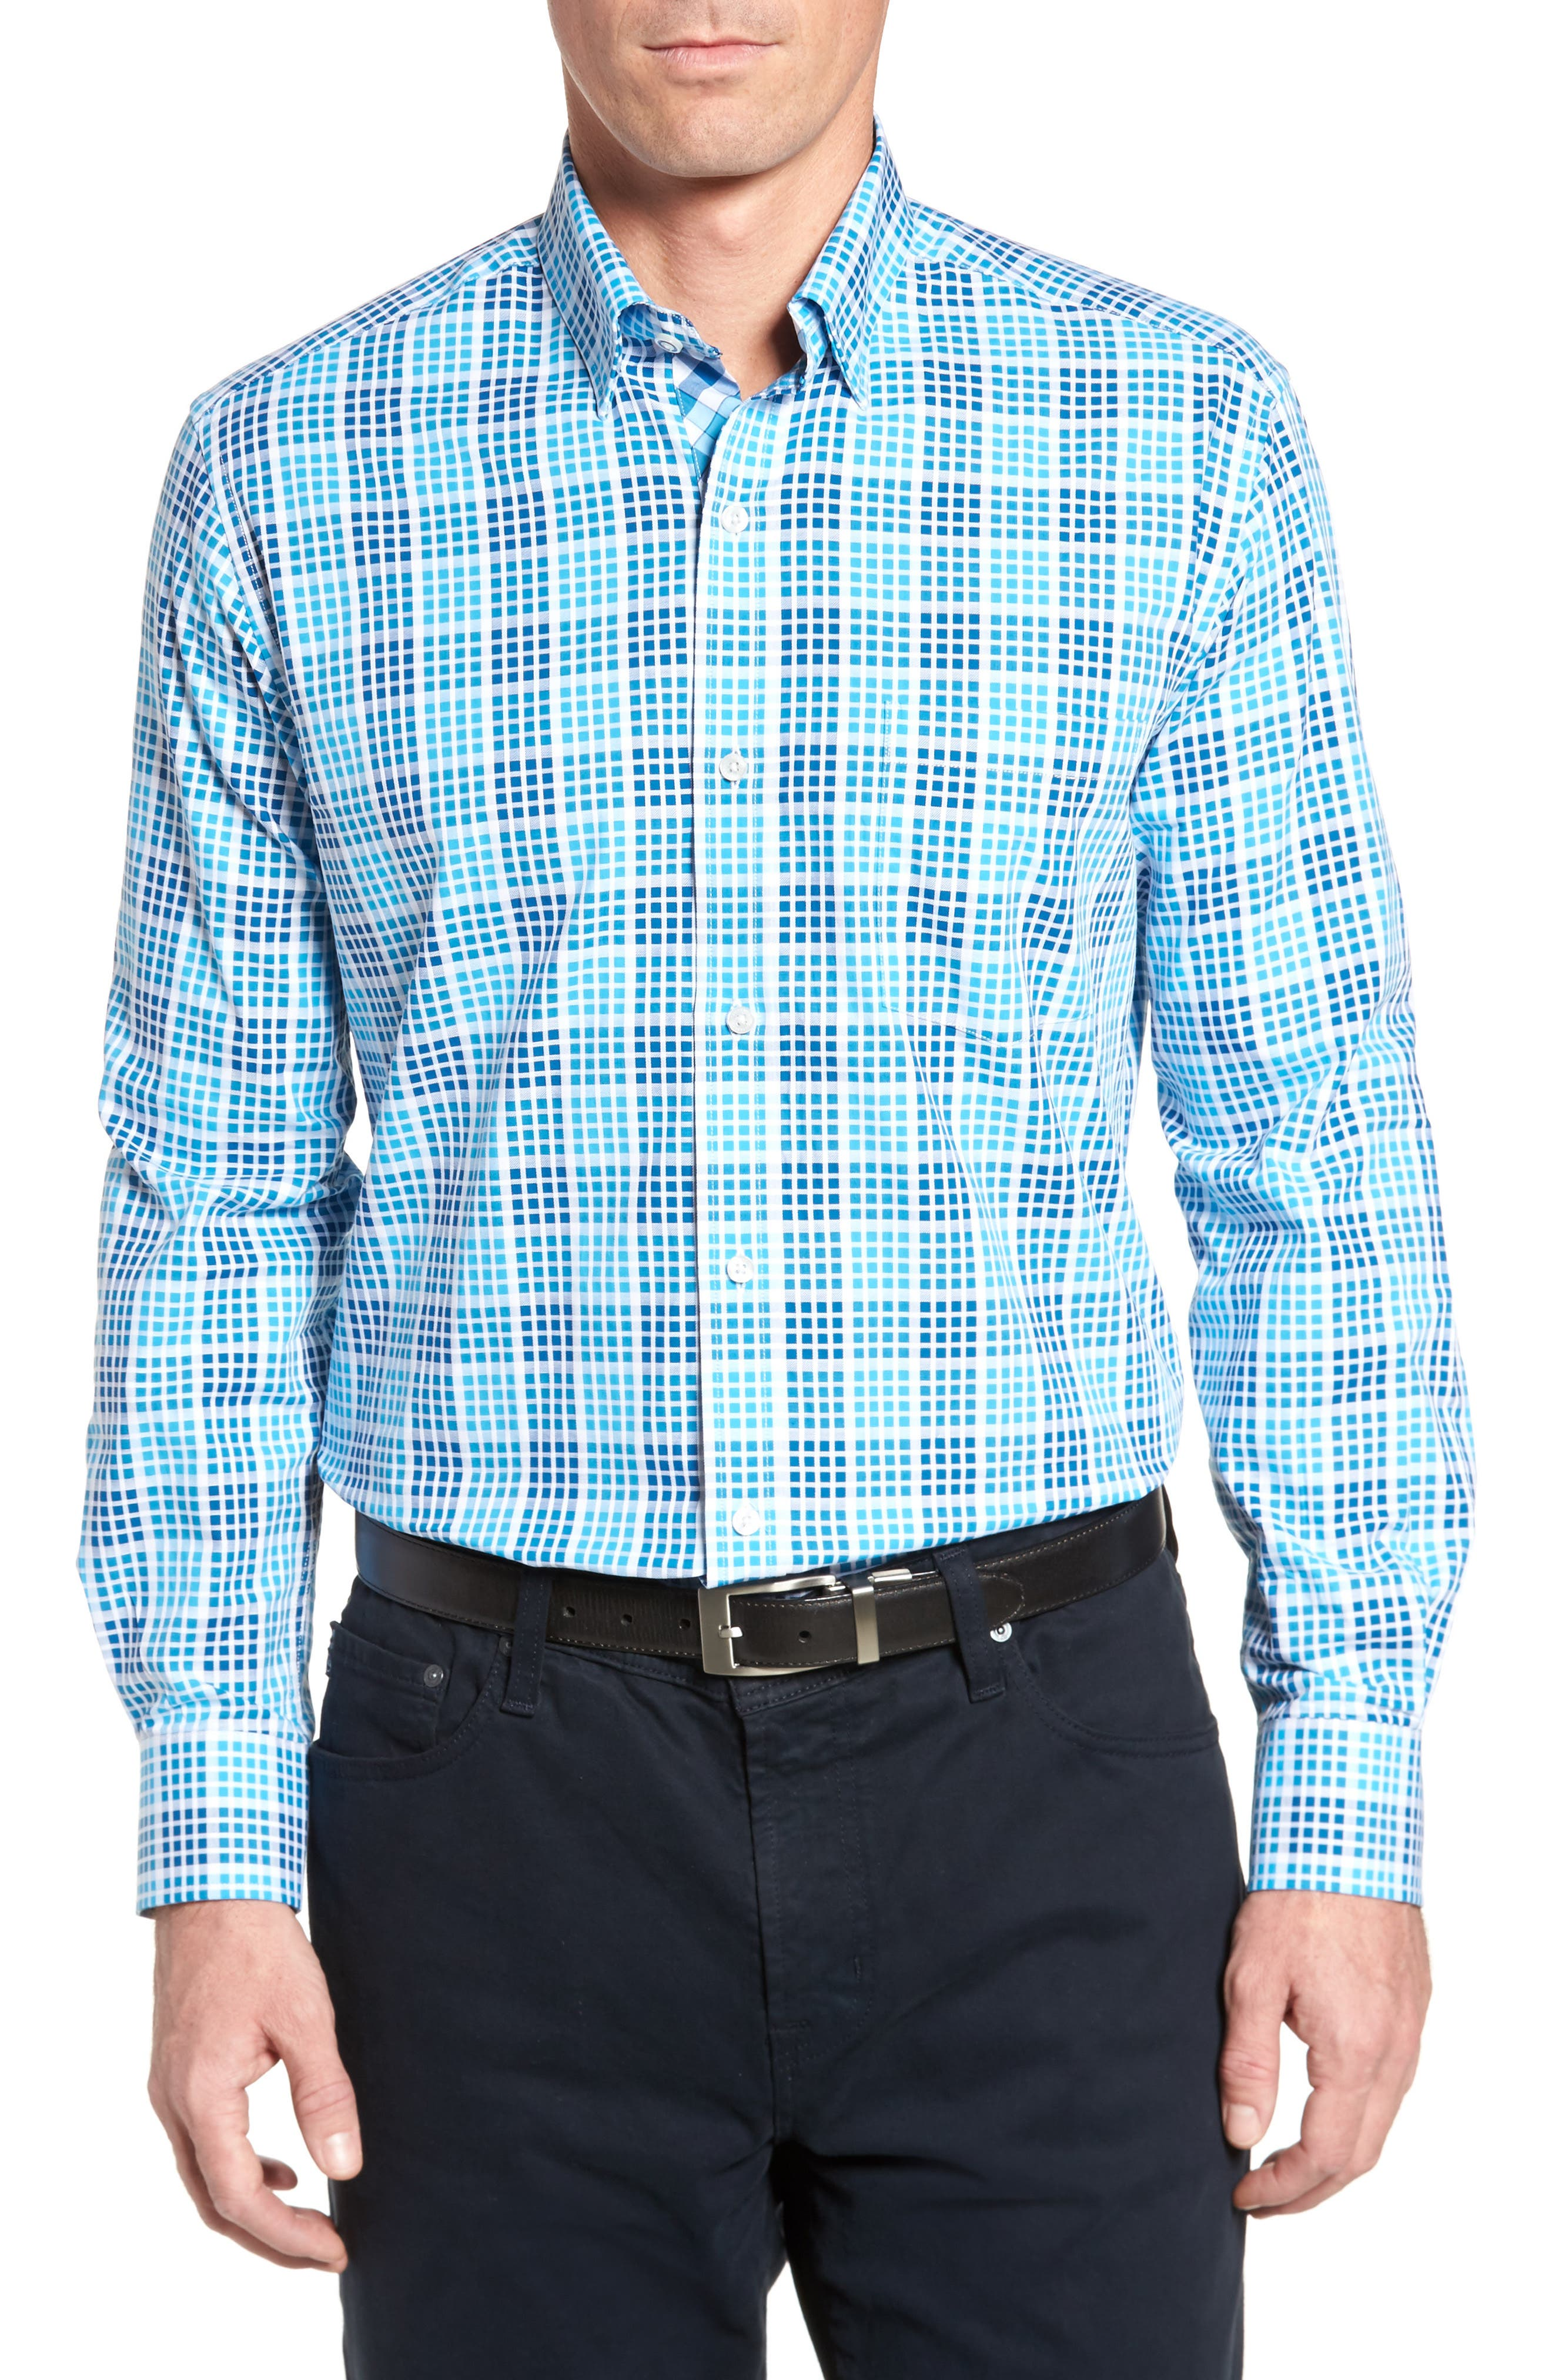 Main Image - TailorByrd New Orleans Sport Shirt